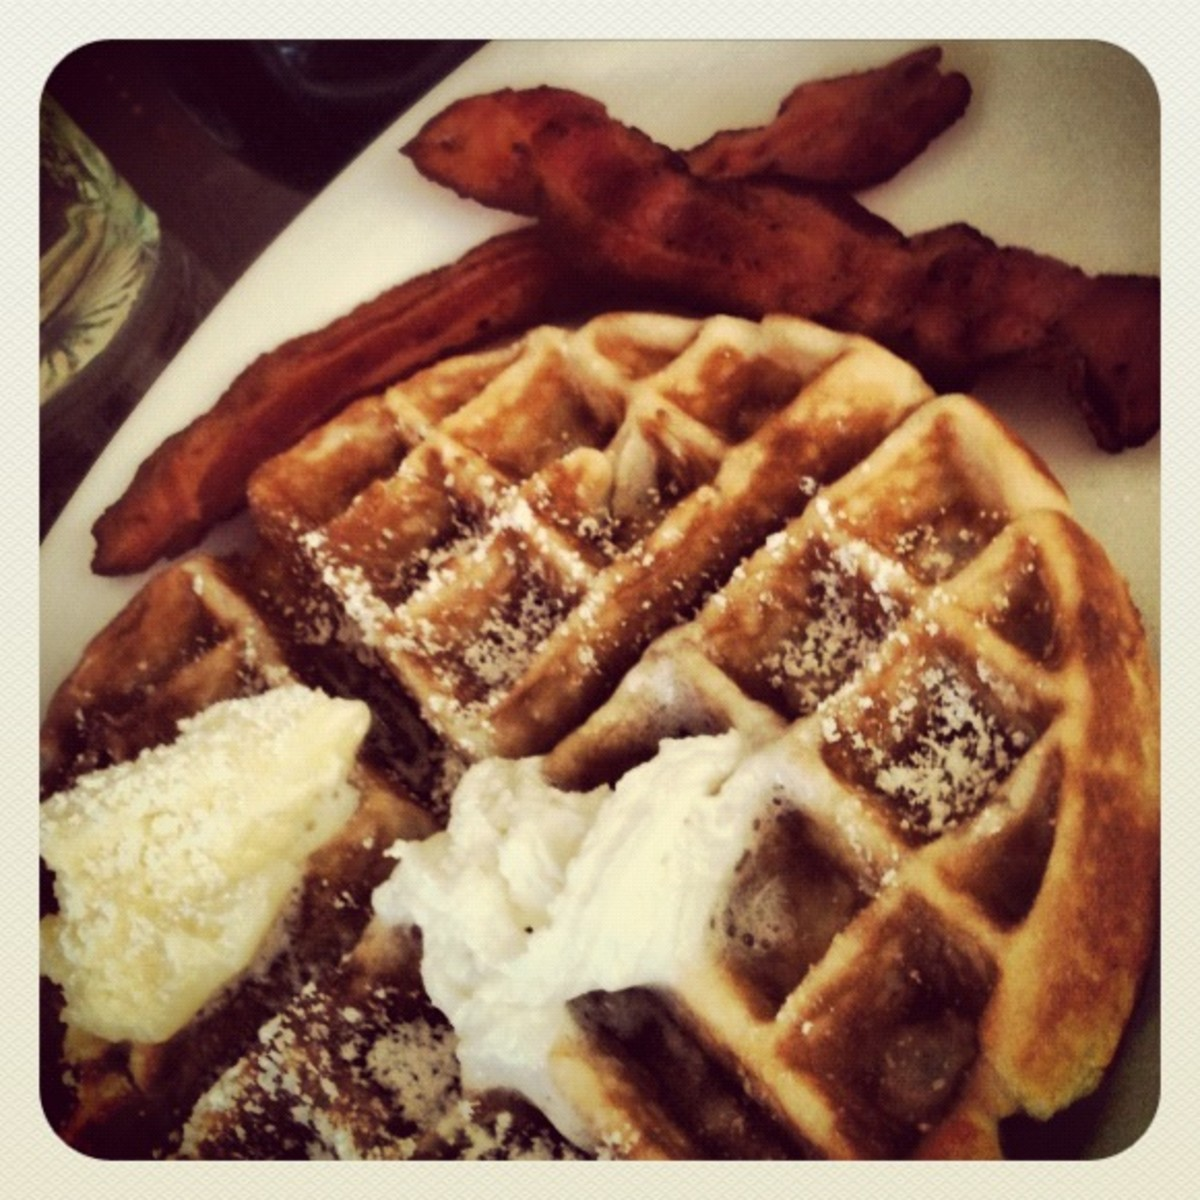 Bacon and Butter are Very High in Fat.